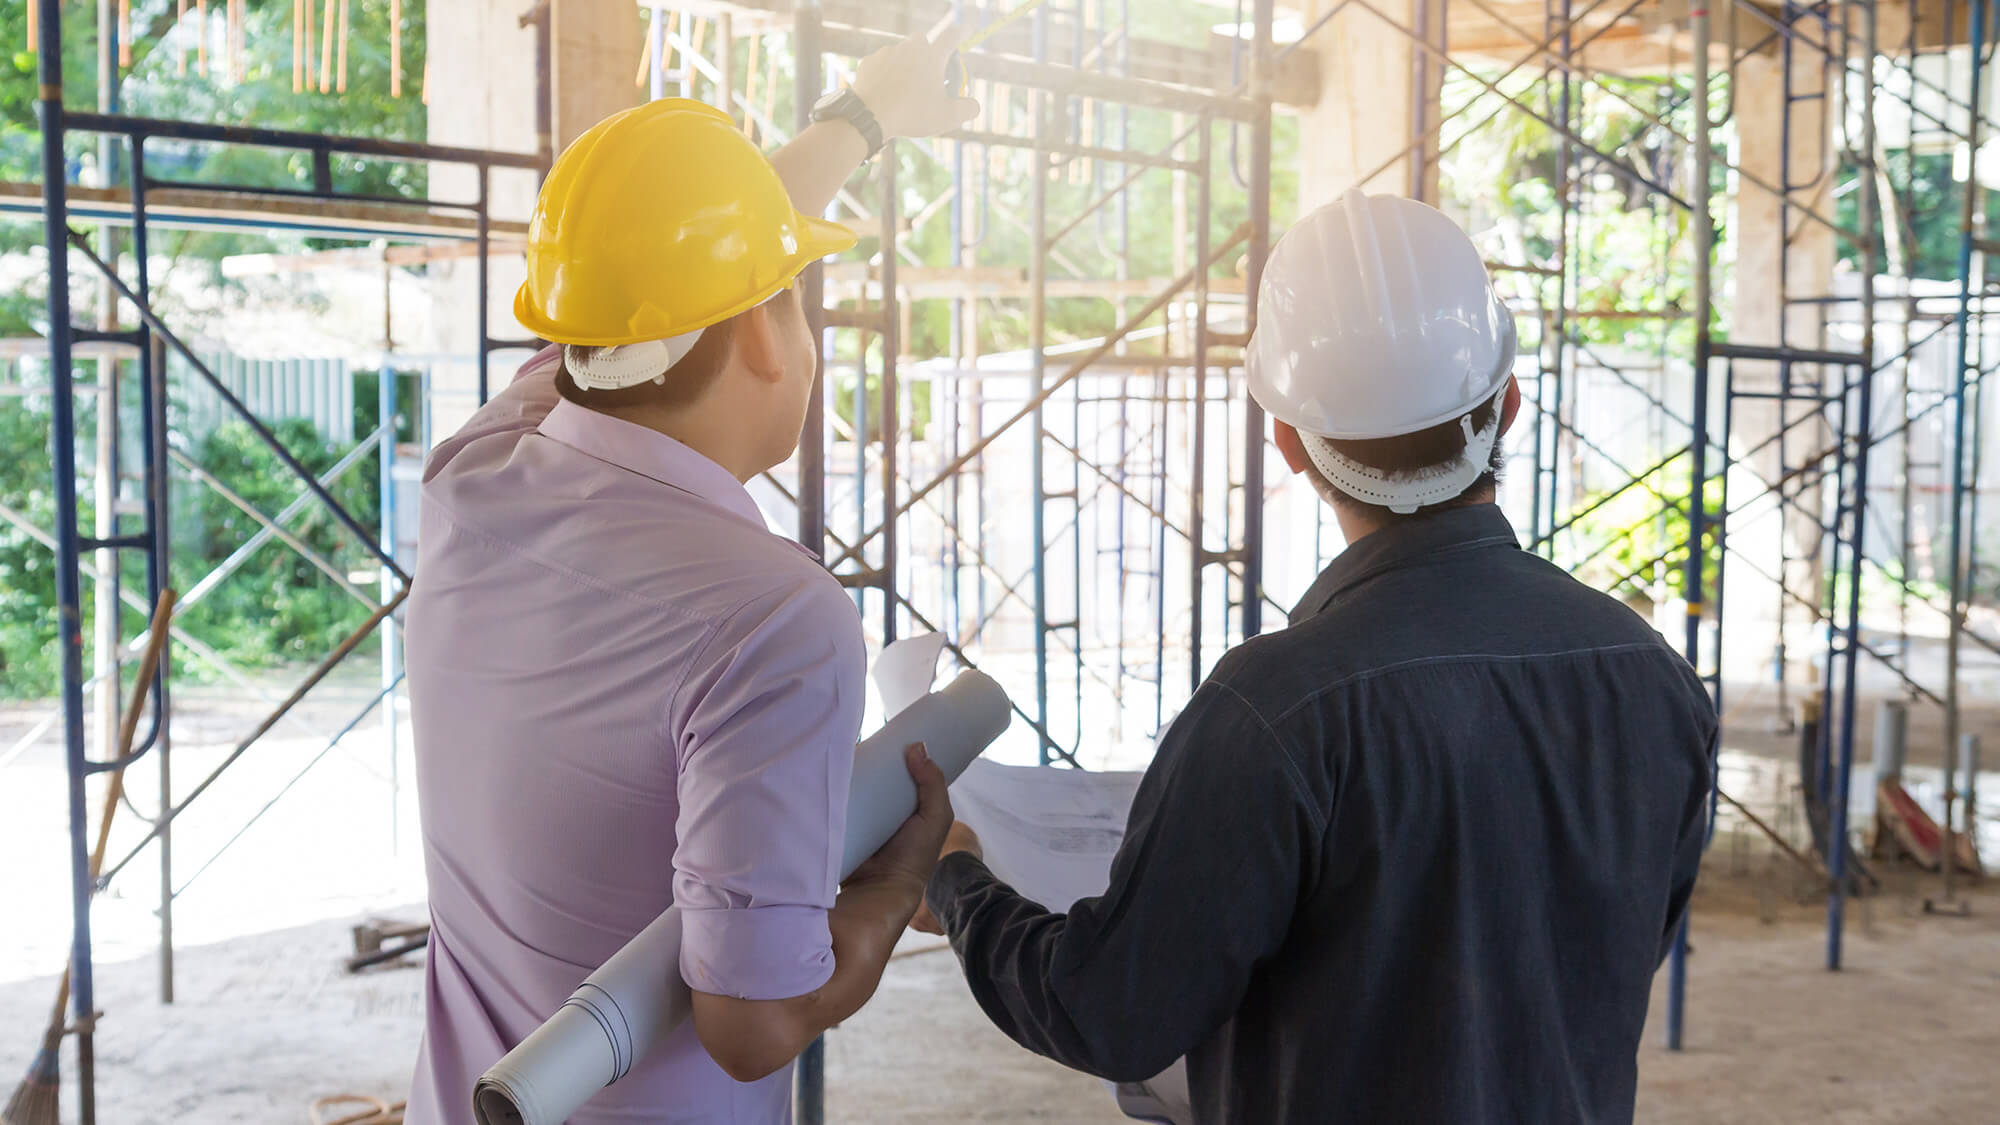 Two people stand on concrete inside scaffolding at a building site. The site is very open and sunny. The people both wear hard-hats and collared shirts. The person on the left, holding rolled plans under their arm, points to the upper levels of the scaffolding. The person on the right holds a plan out in front but looks toward the higher levels, as well.